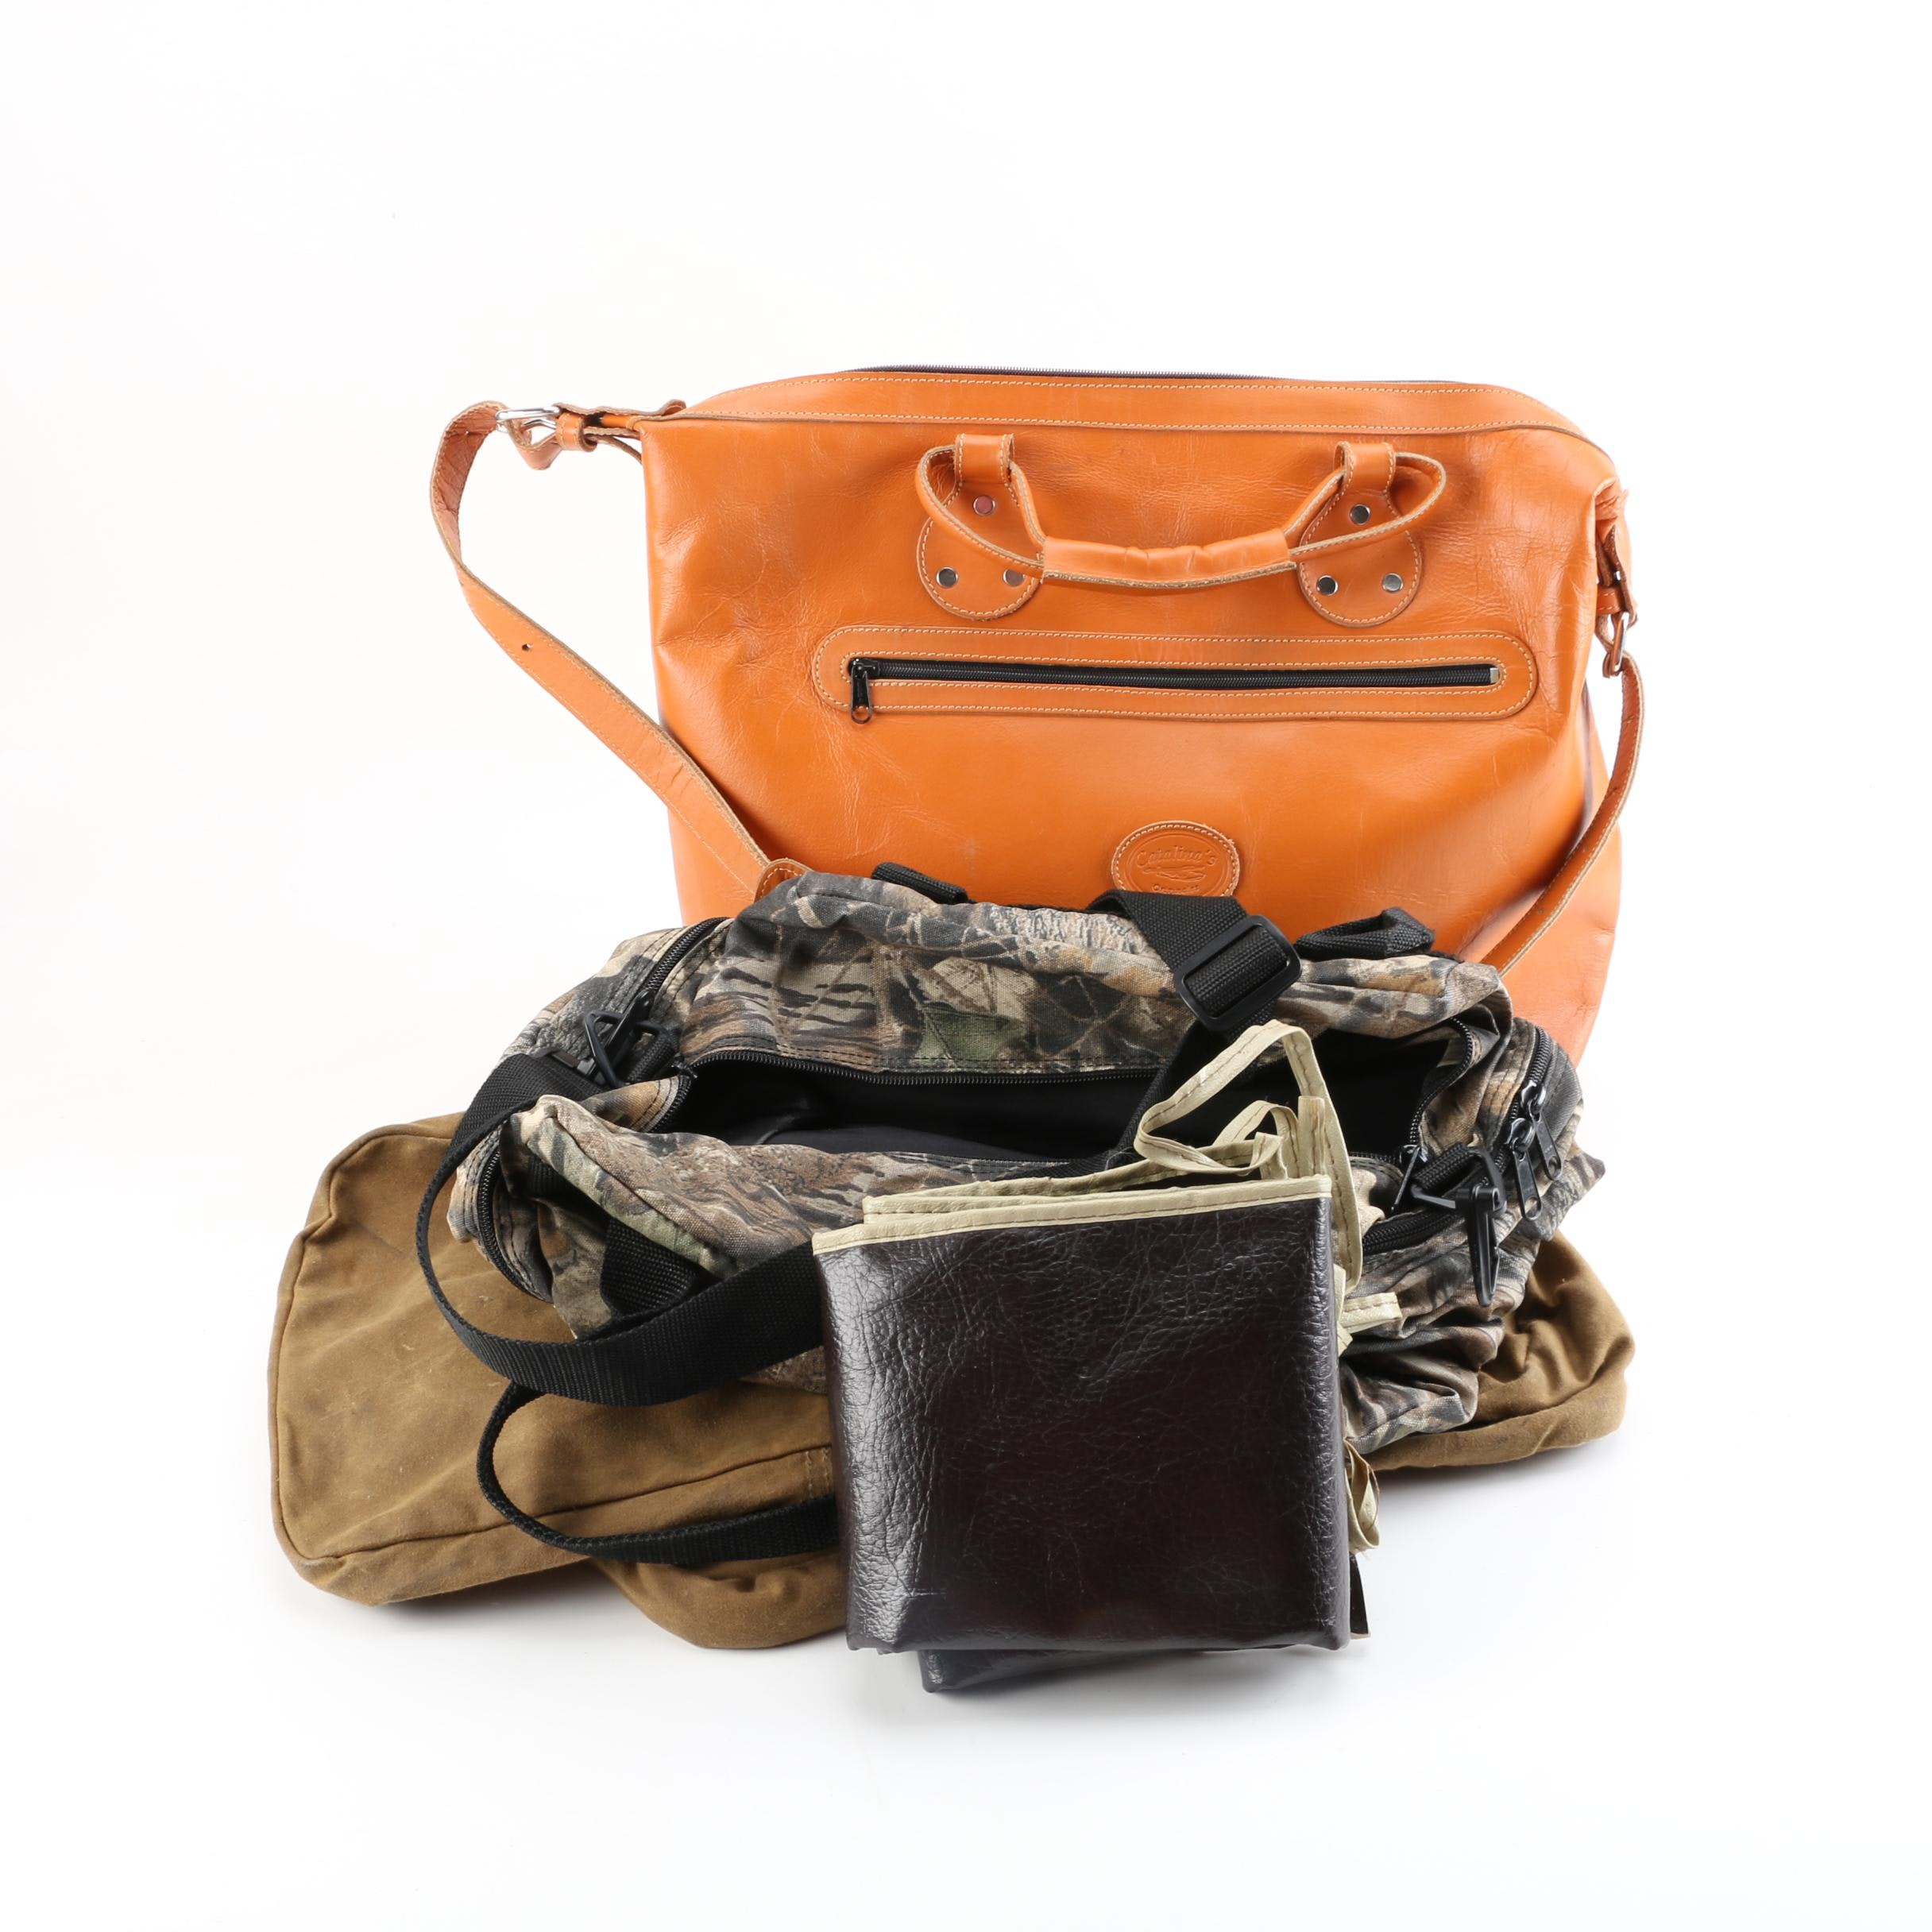 Catalina's Leather Handbag, Rifle Bag and Ammo Carrying Accessories